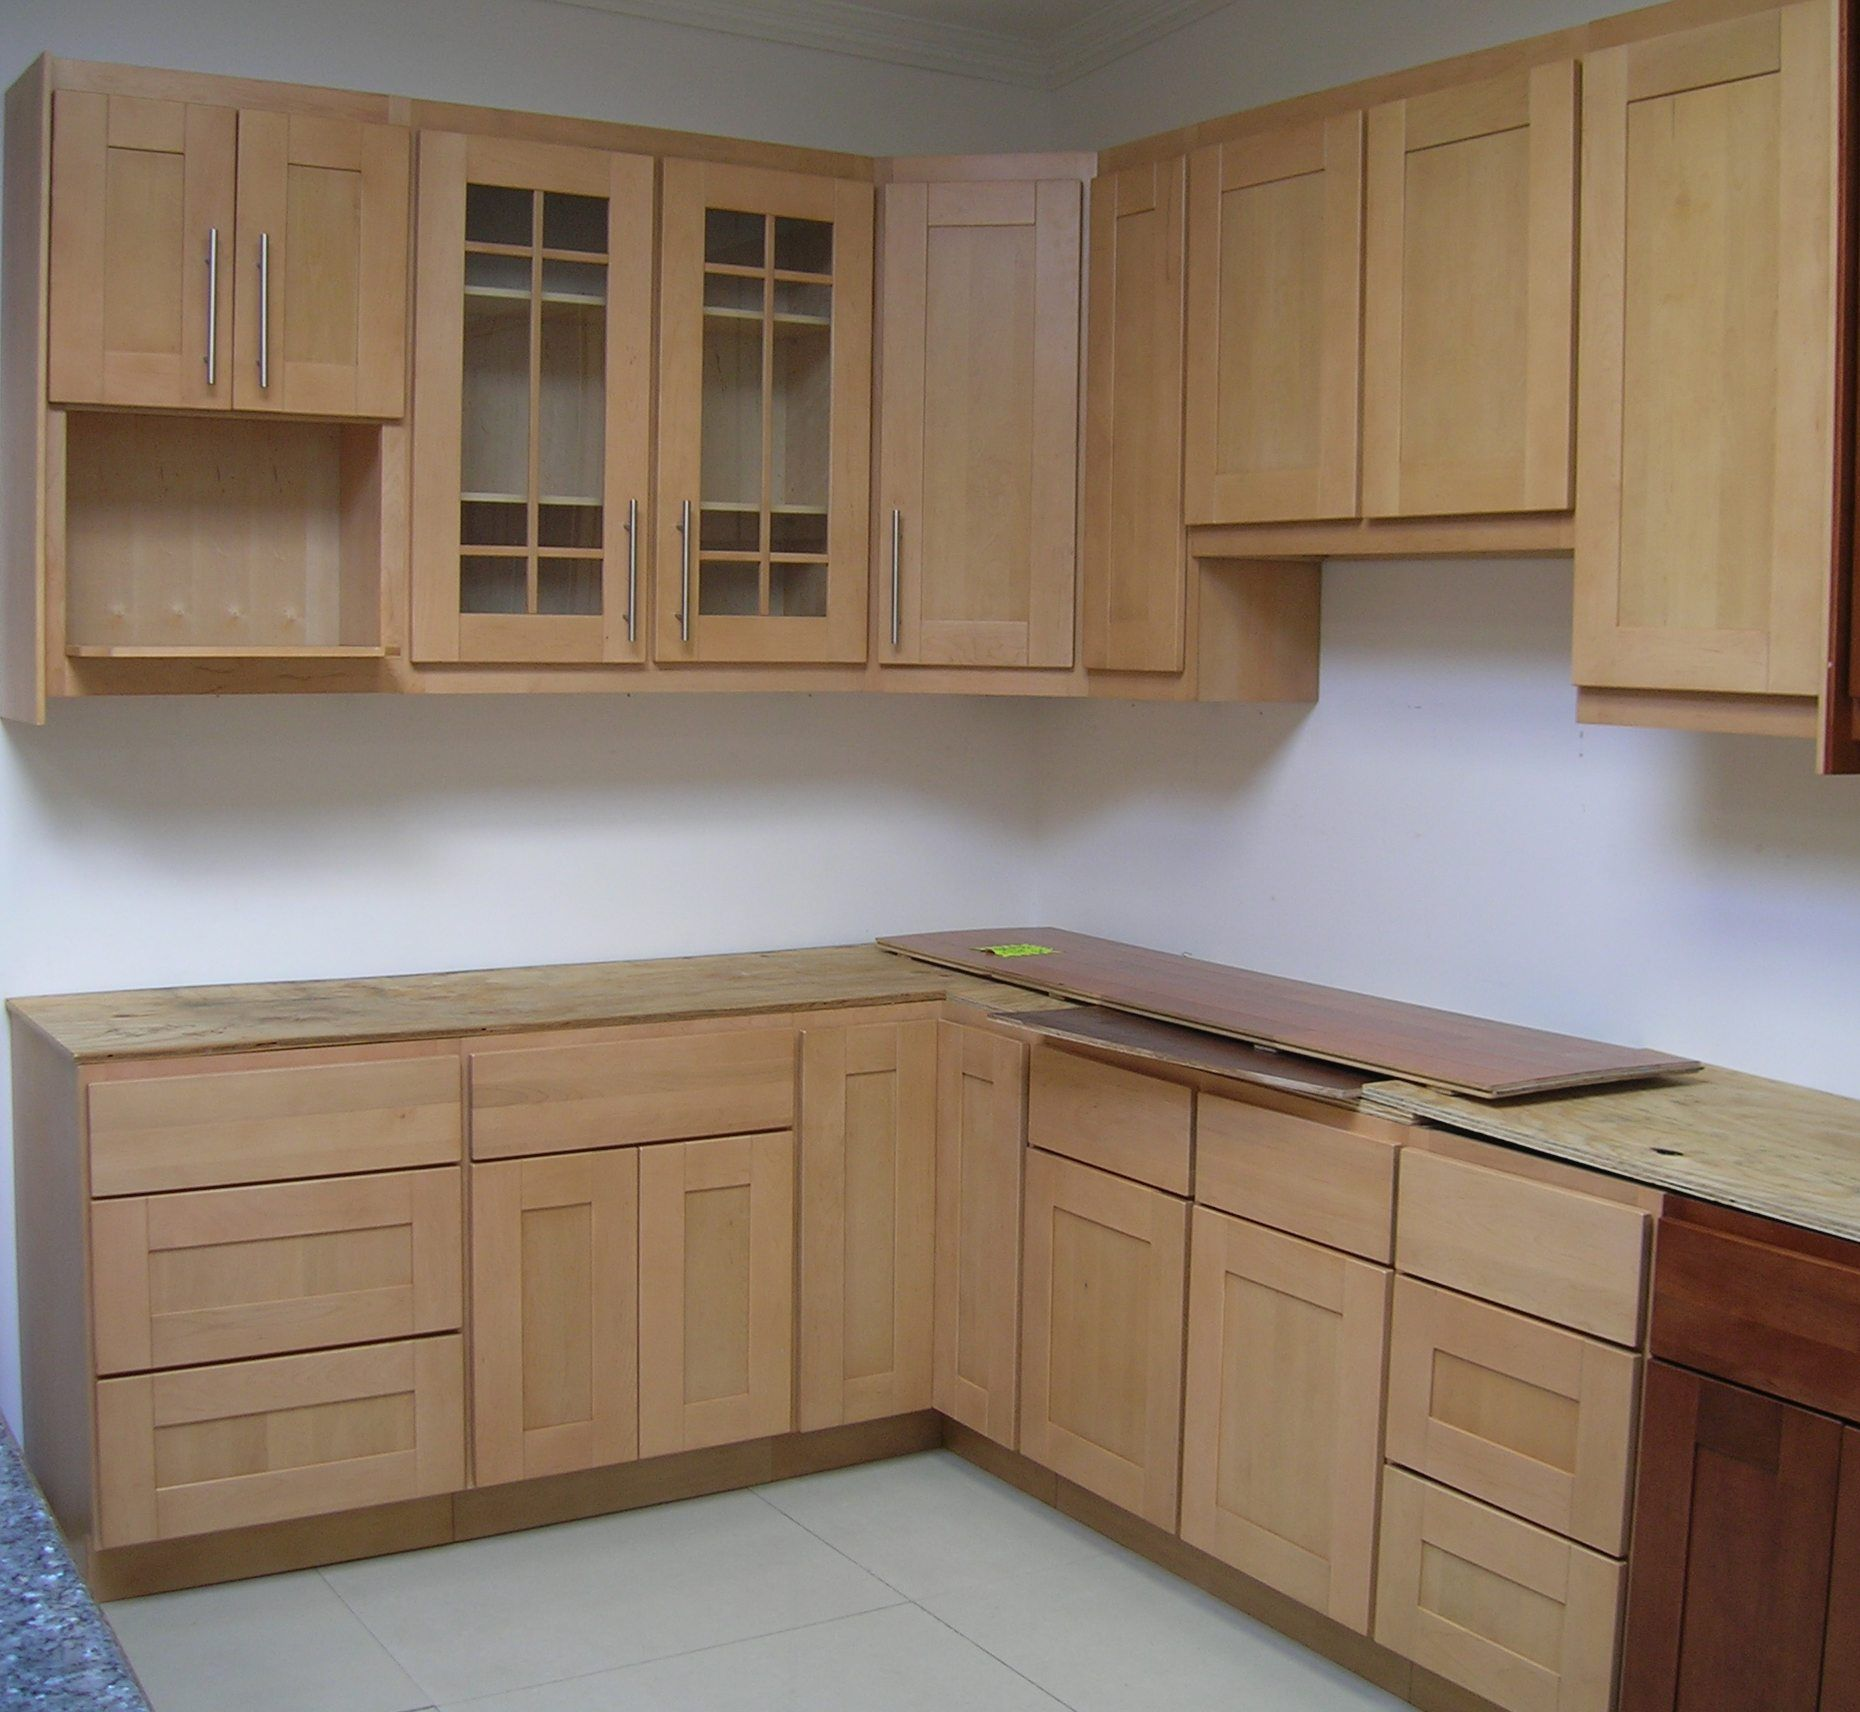 Remodeling Kitchen Cabinets Kitchen Cabinet Outlet Cleveland